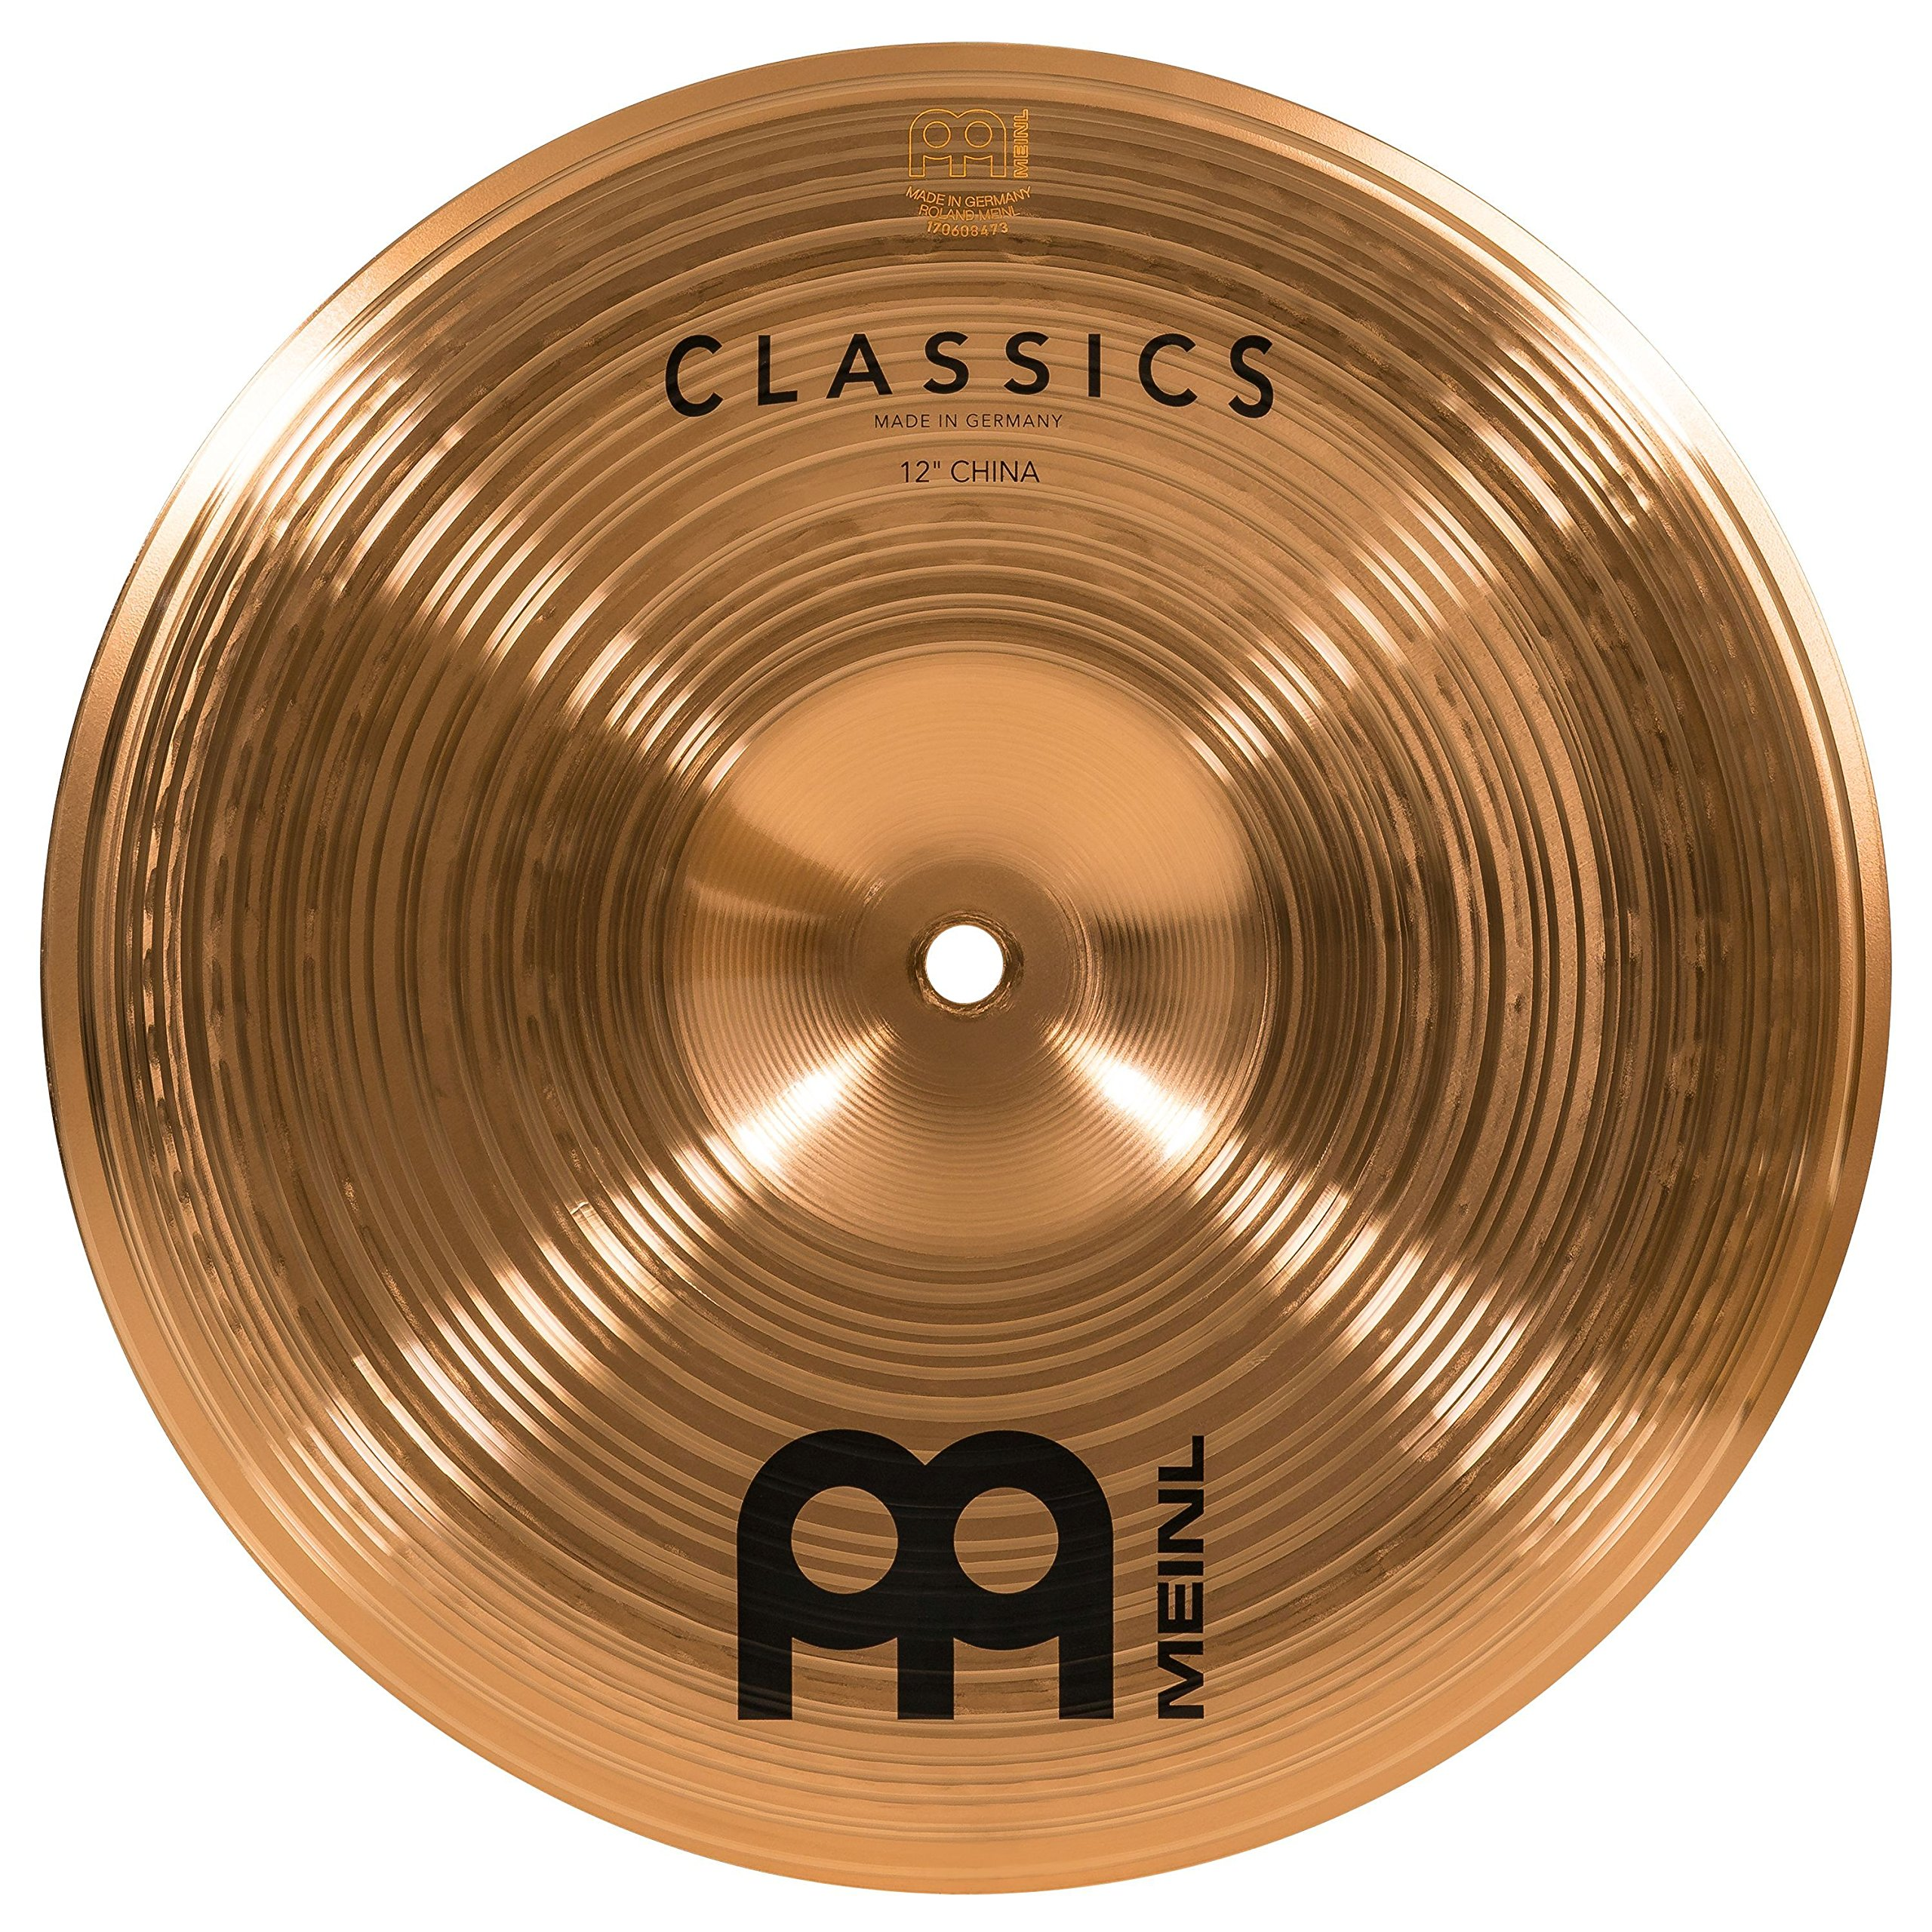 Meinl 12'' China Cymbal - Classics Traditional - Made in Germany, 2-YEAR WARRANTY (C12CH) by Meinl Cymbals